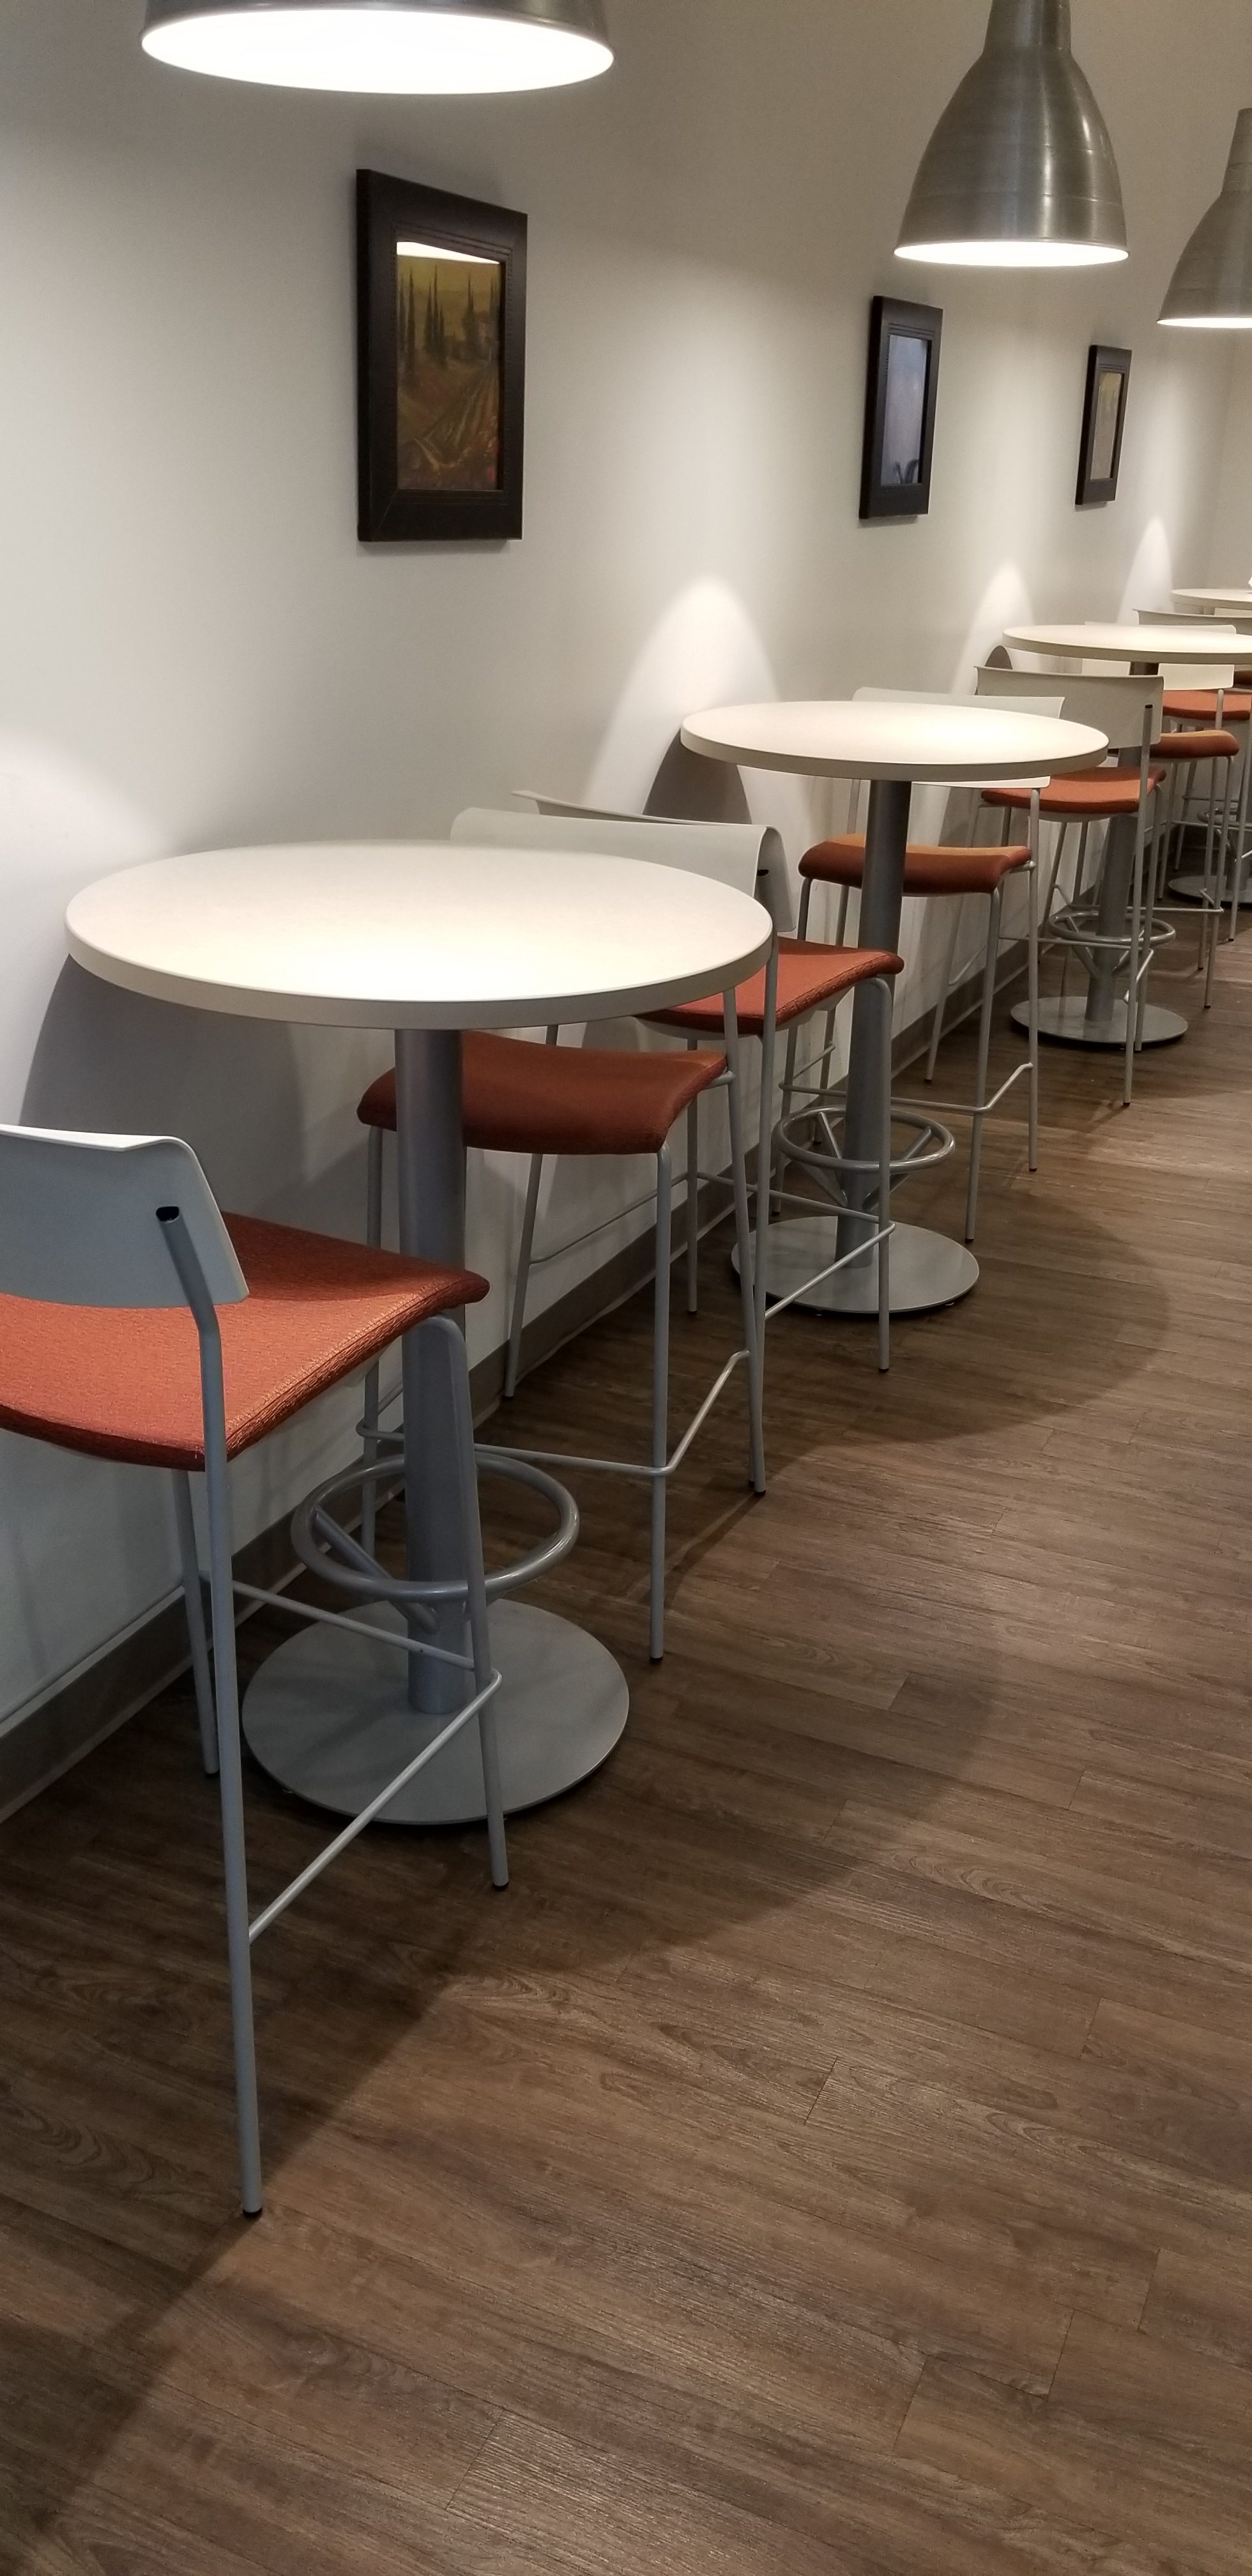 Break Room Furniture Knoll Arena Tables Hon White Orange Seating